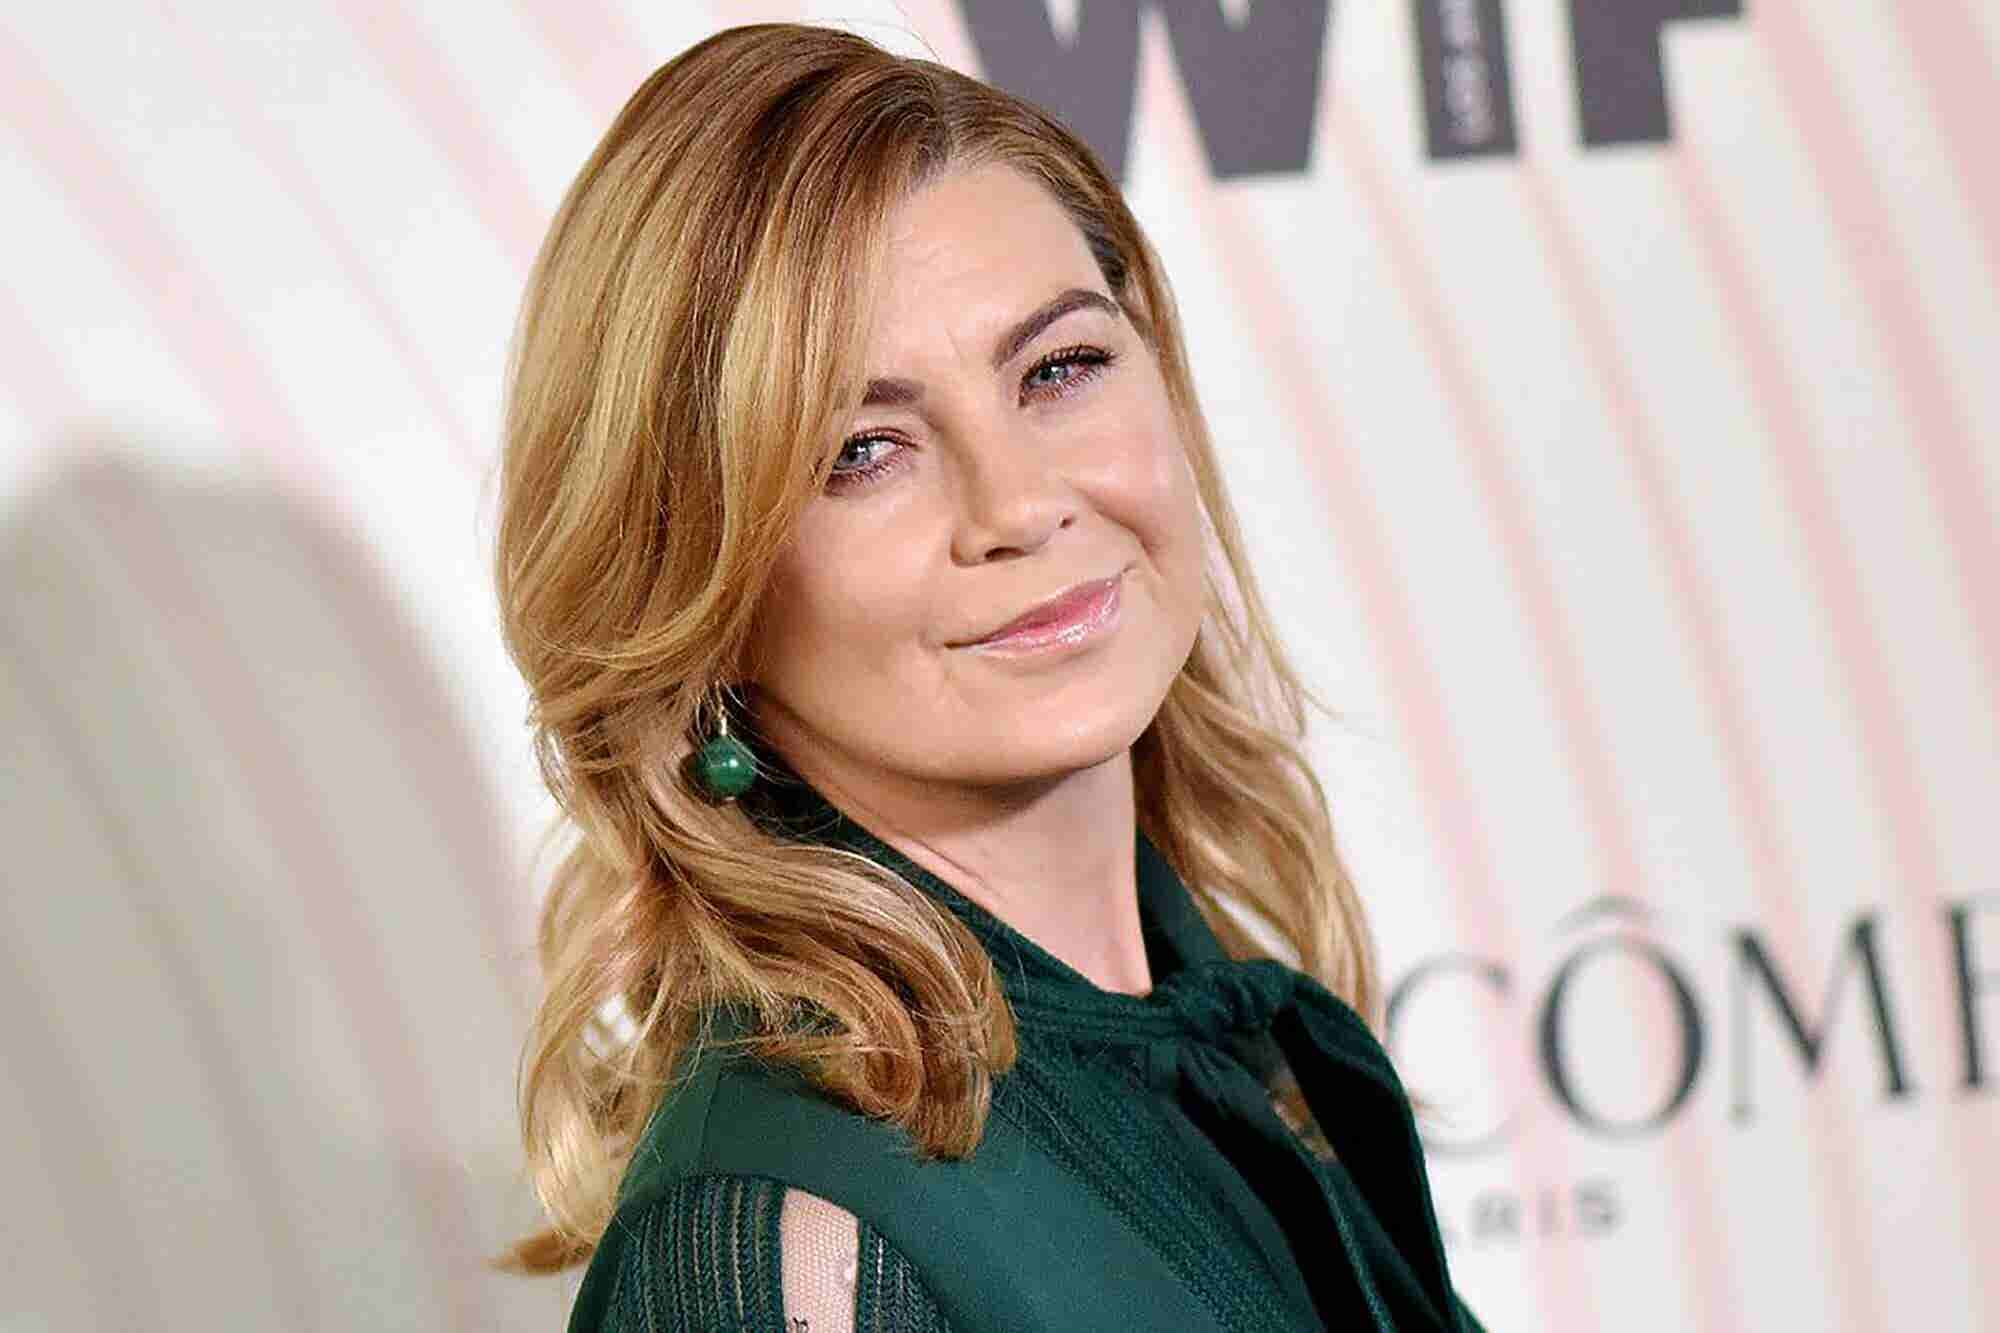 Get Salary Negotiating Tips From Ellen Pompeo, One of the Highest Paid...